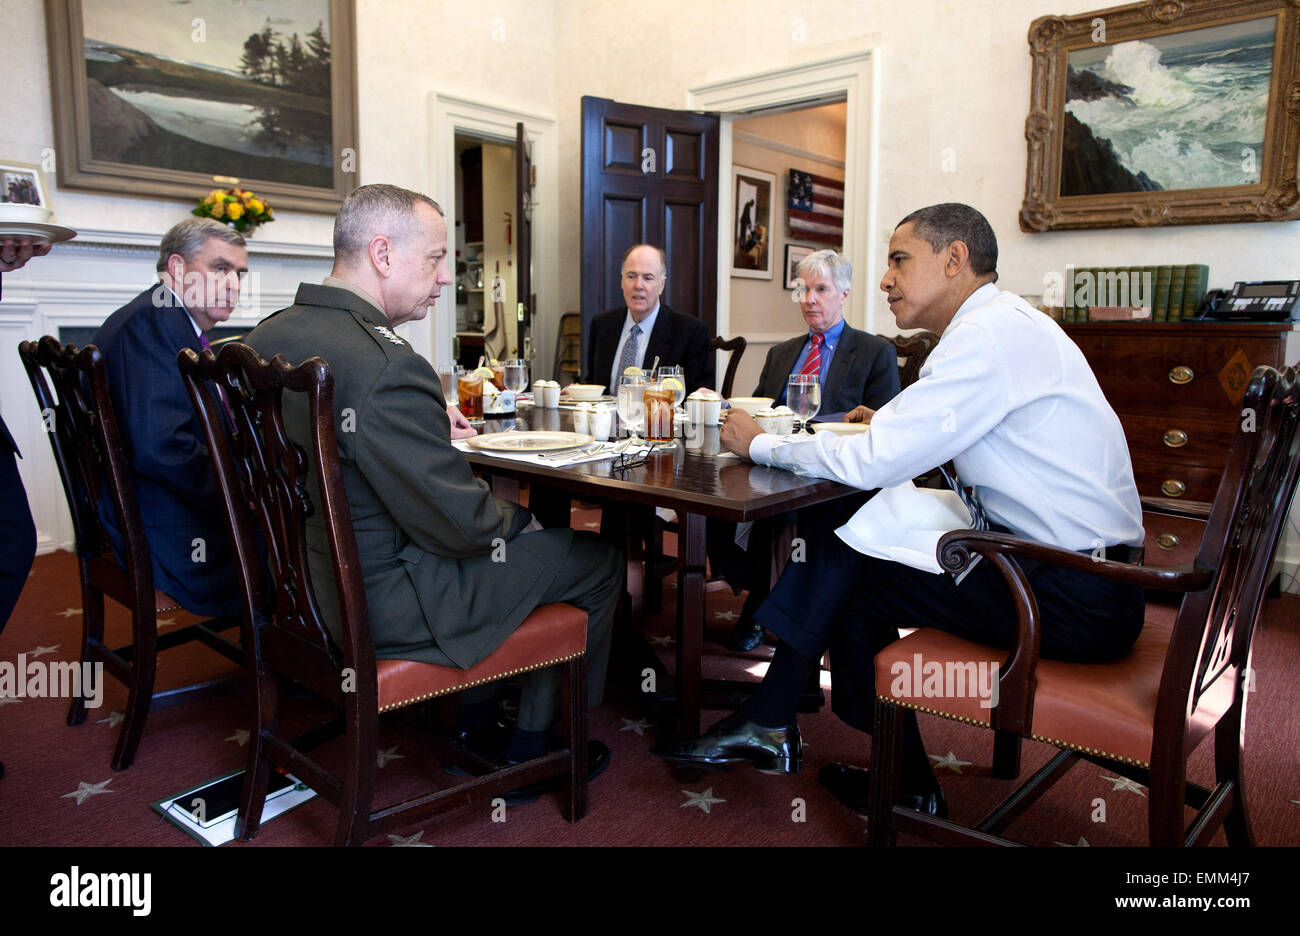 12.MARCH.2012. WASHINGTON D.C  PRESIDENT BARACK OBAMA HAS LUNCH WITH, FROM LEFT: DOUGLAS E. LUTE, SENIOR DIRECTOR - Stock Image